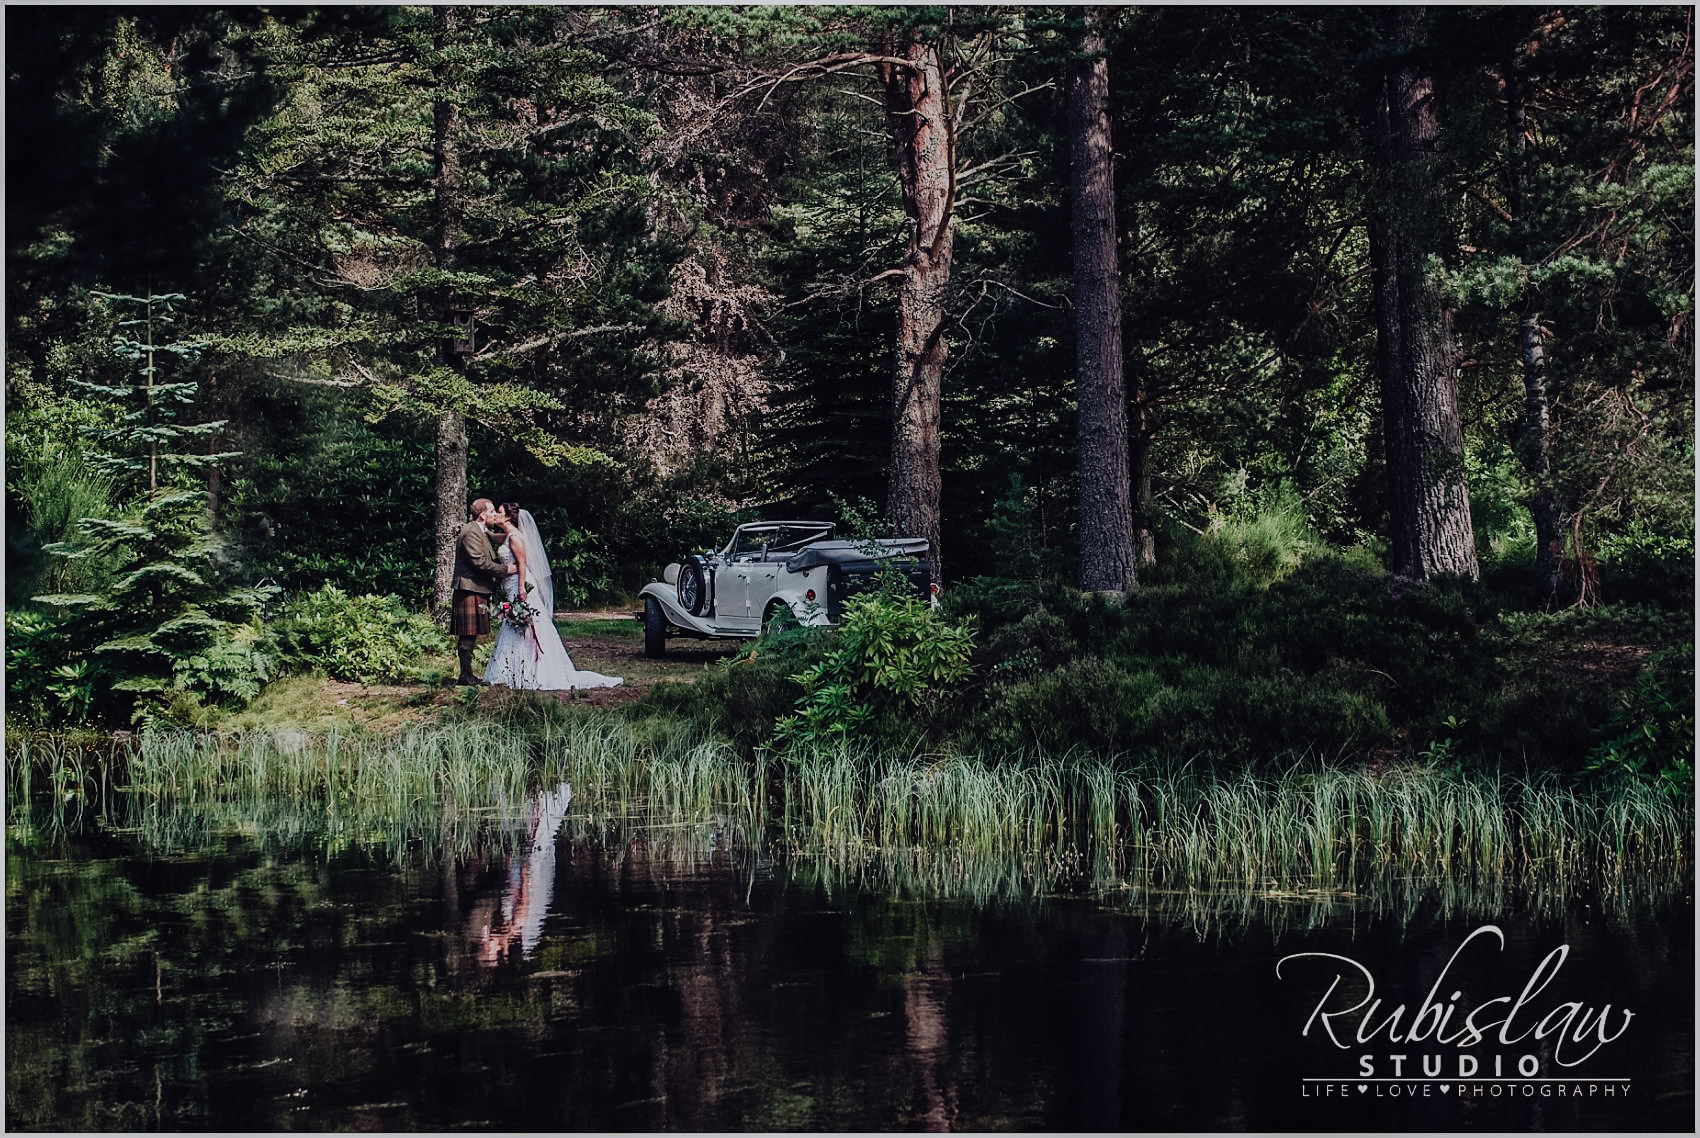 Kirsty and Ashley wedding at Glen Tanar Ballroom